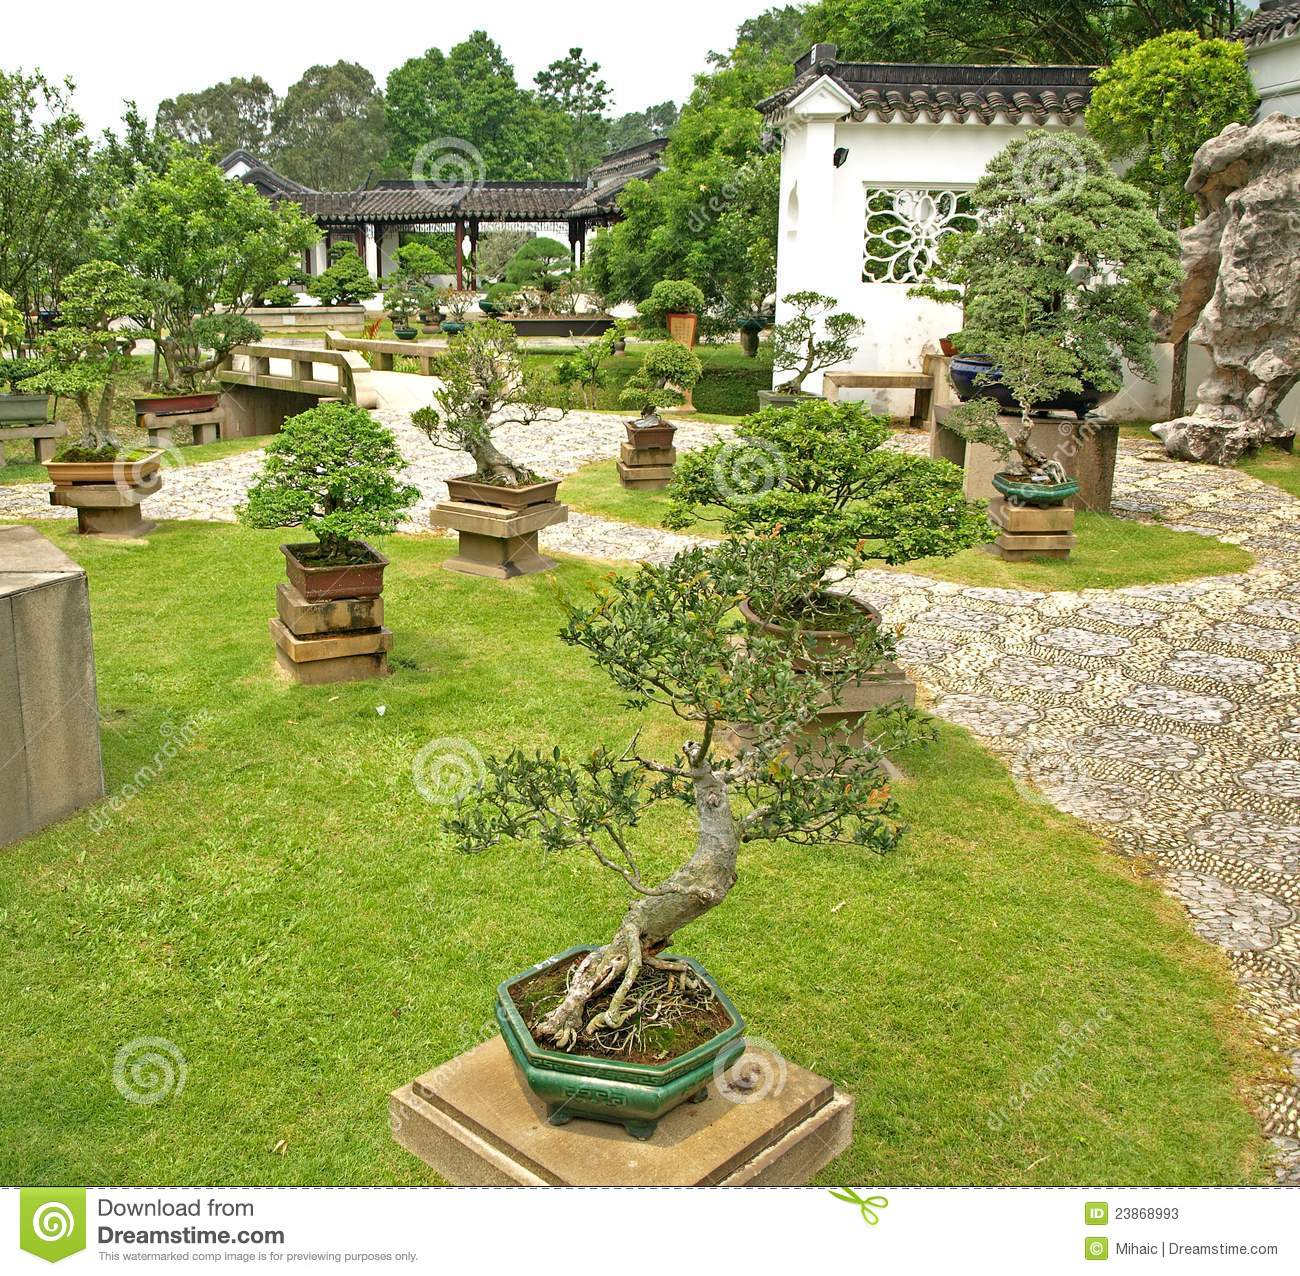 Giardini cinesi immagine stock immagine di contemplation for Bonsai de jardin